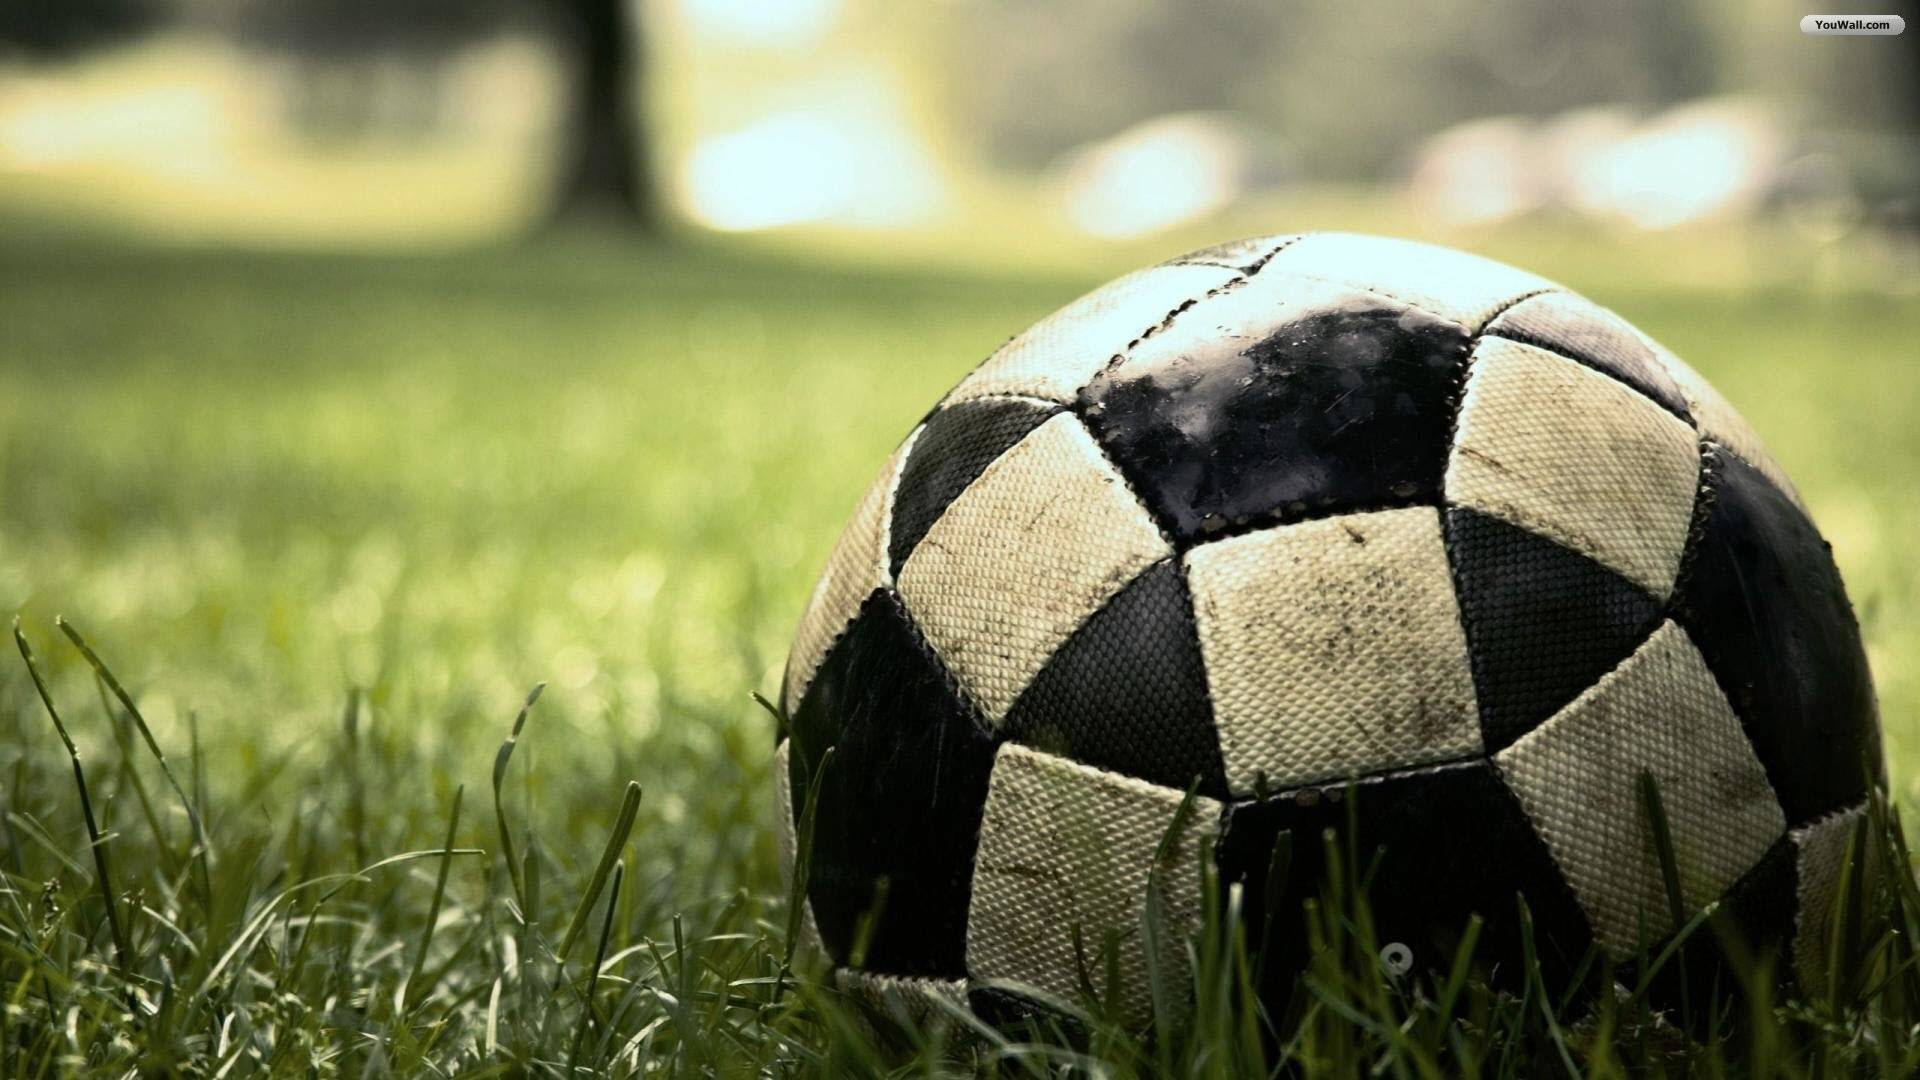 Soccer HD Wallpapers   Wallpaper Cave Soccer Wallpaper 2013 Hd Background Wallpaper 23 HD Wallpapers